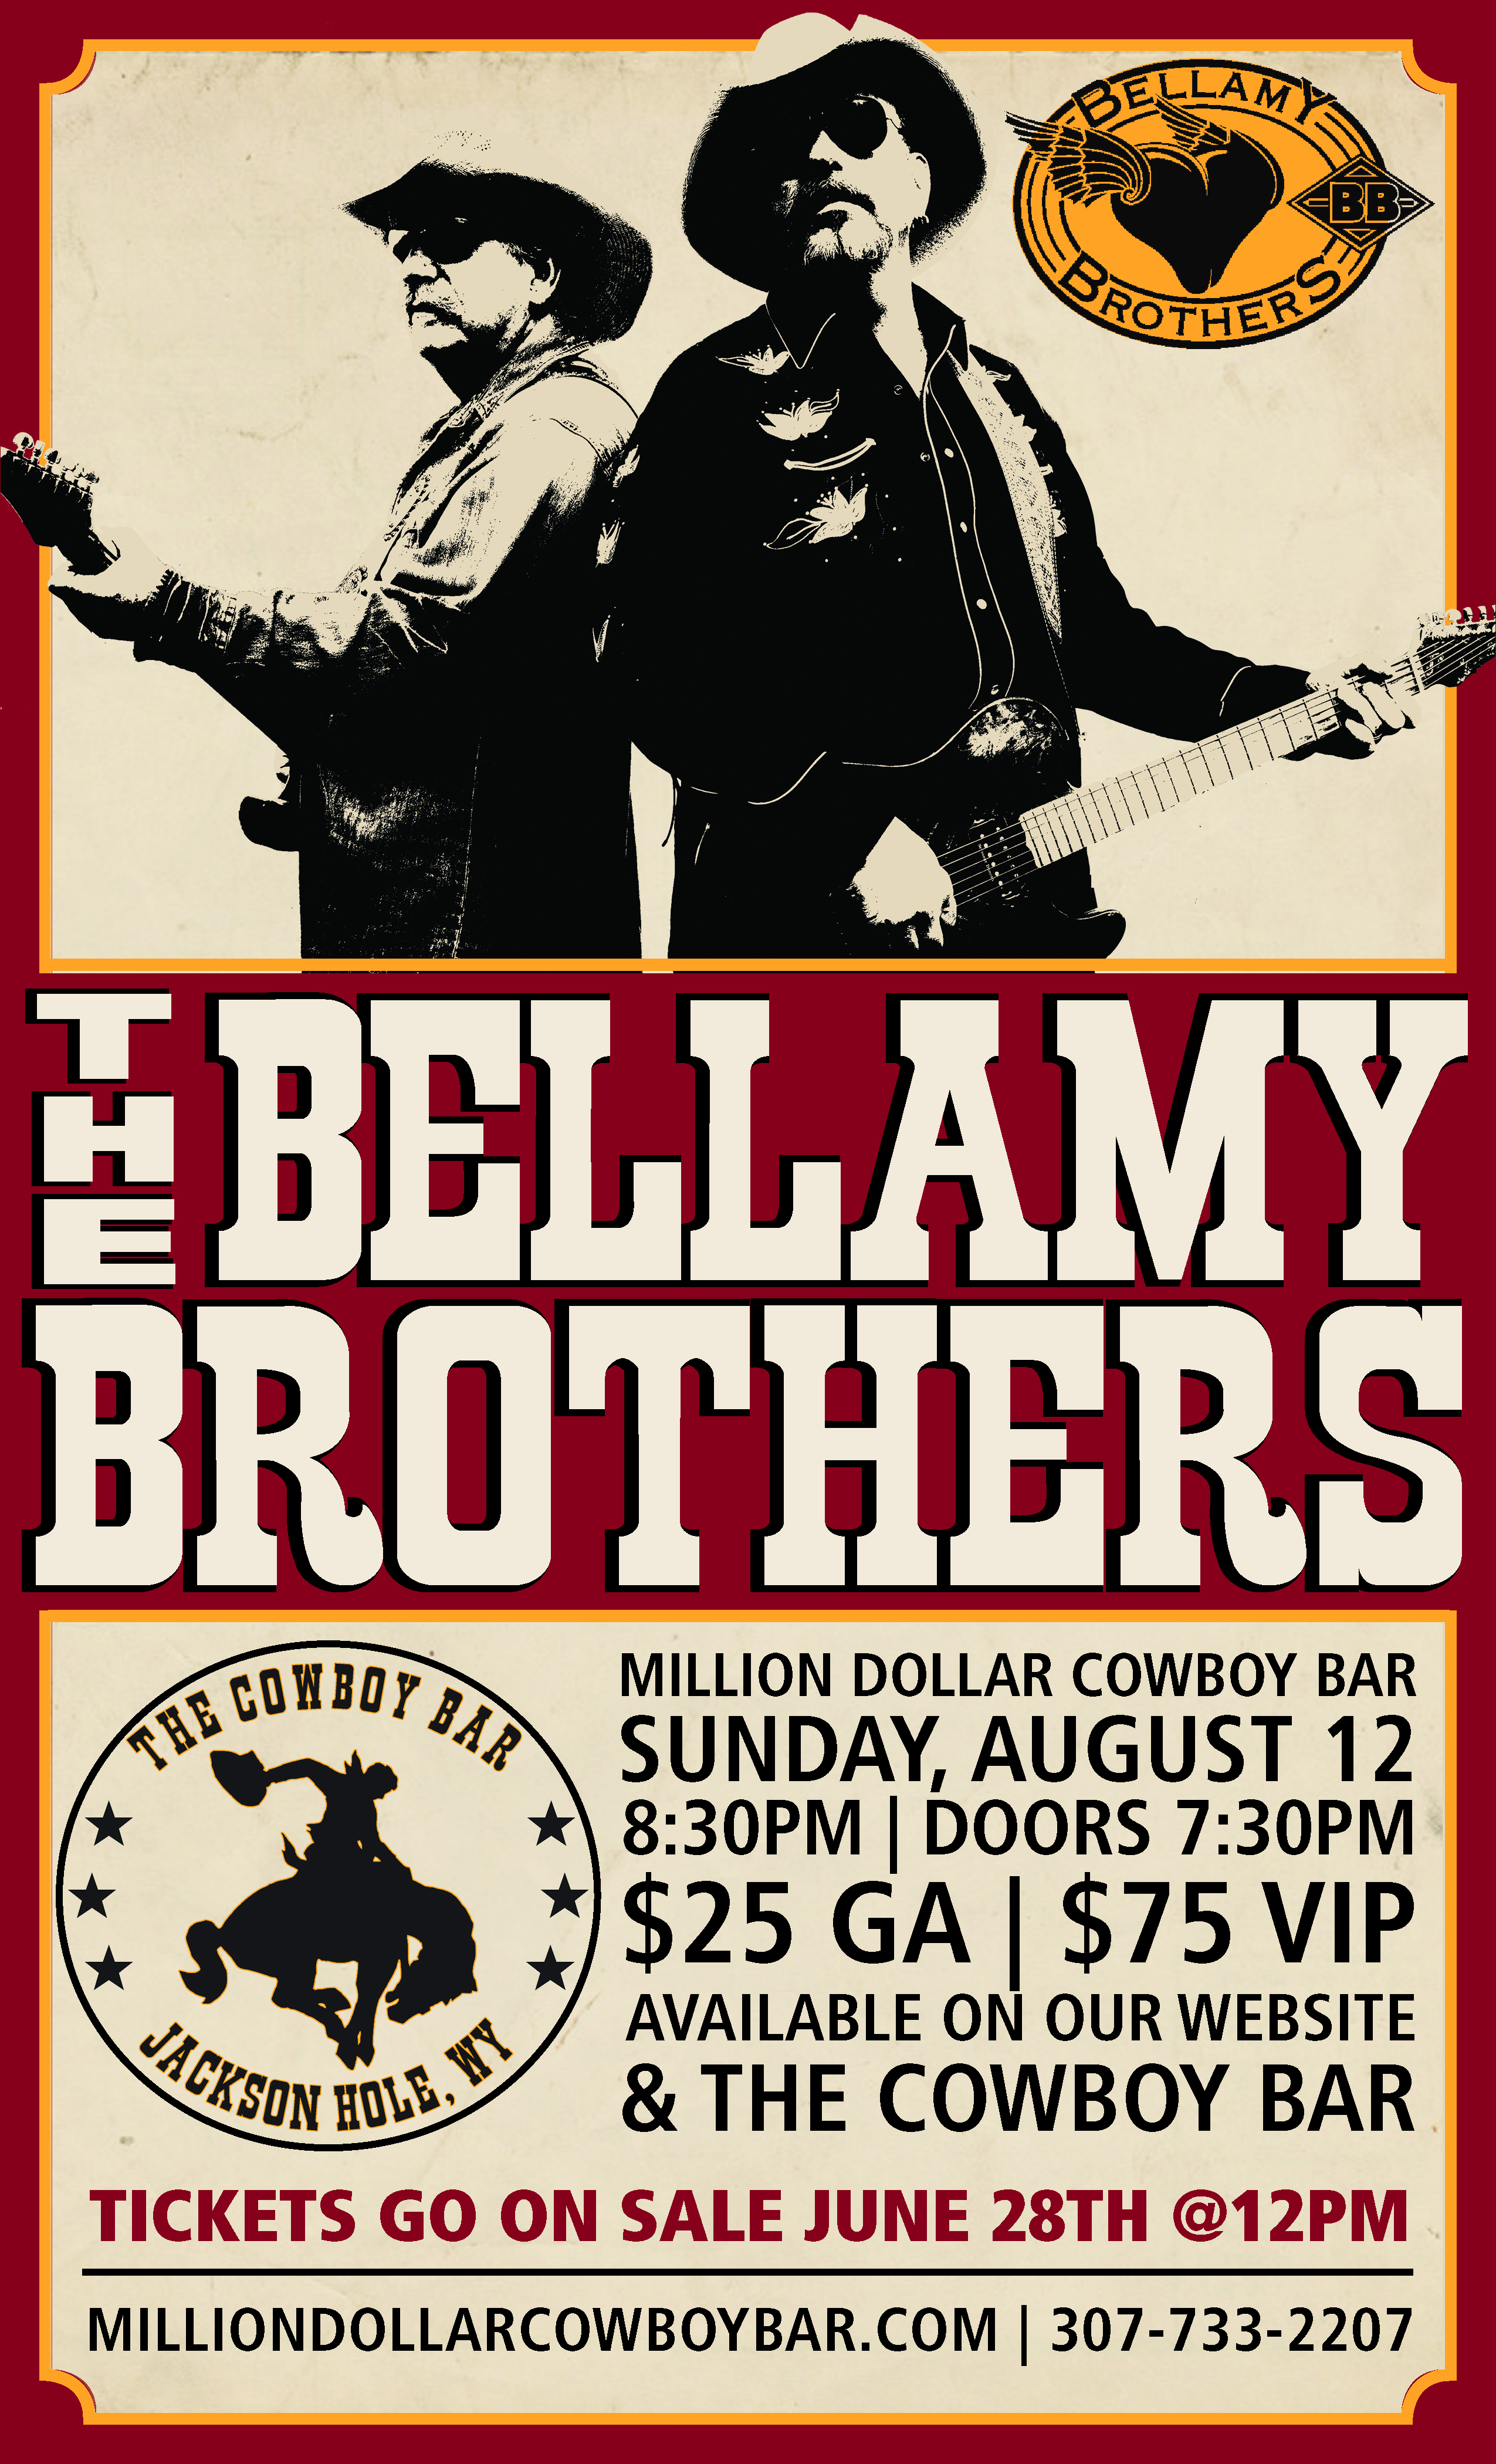 The Bellamy Brothers in Jackson Hole